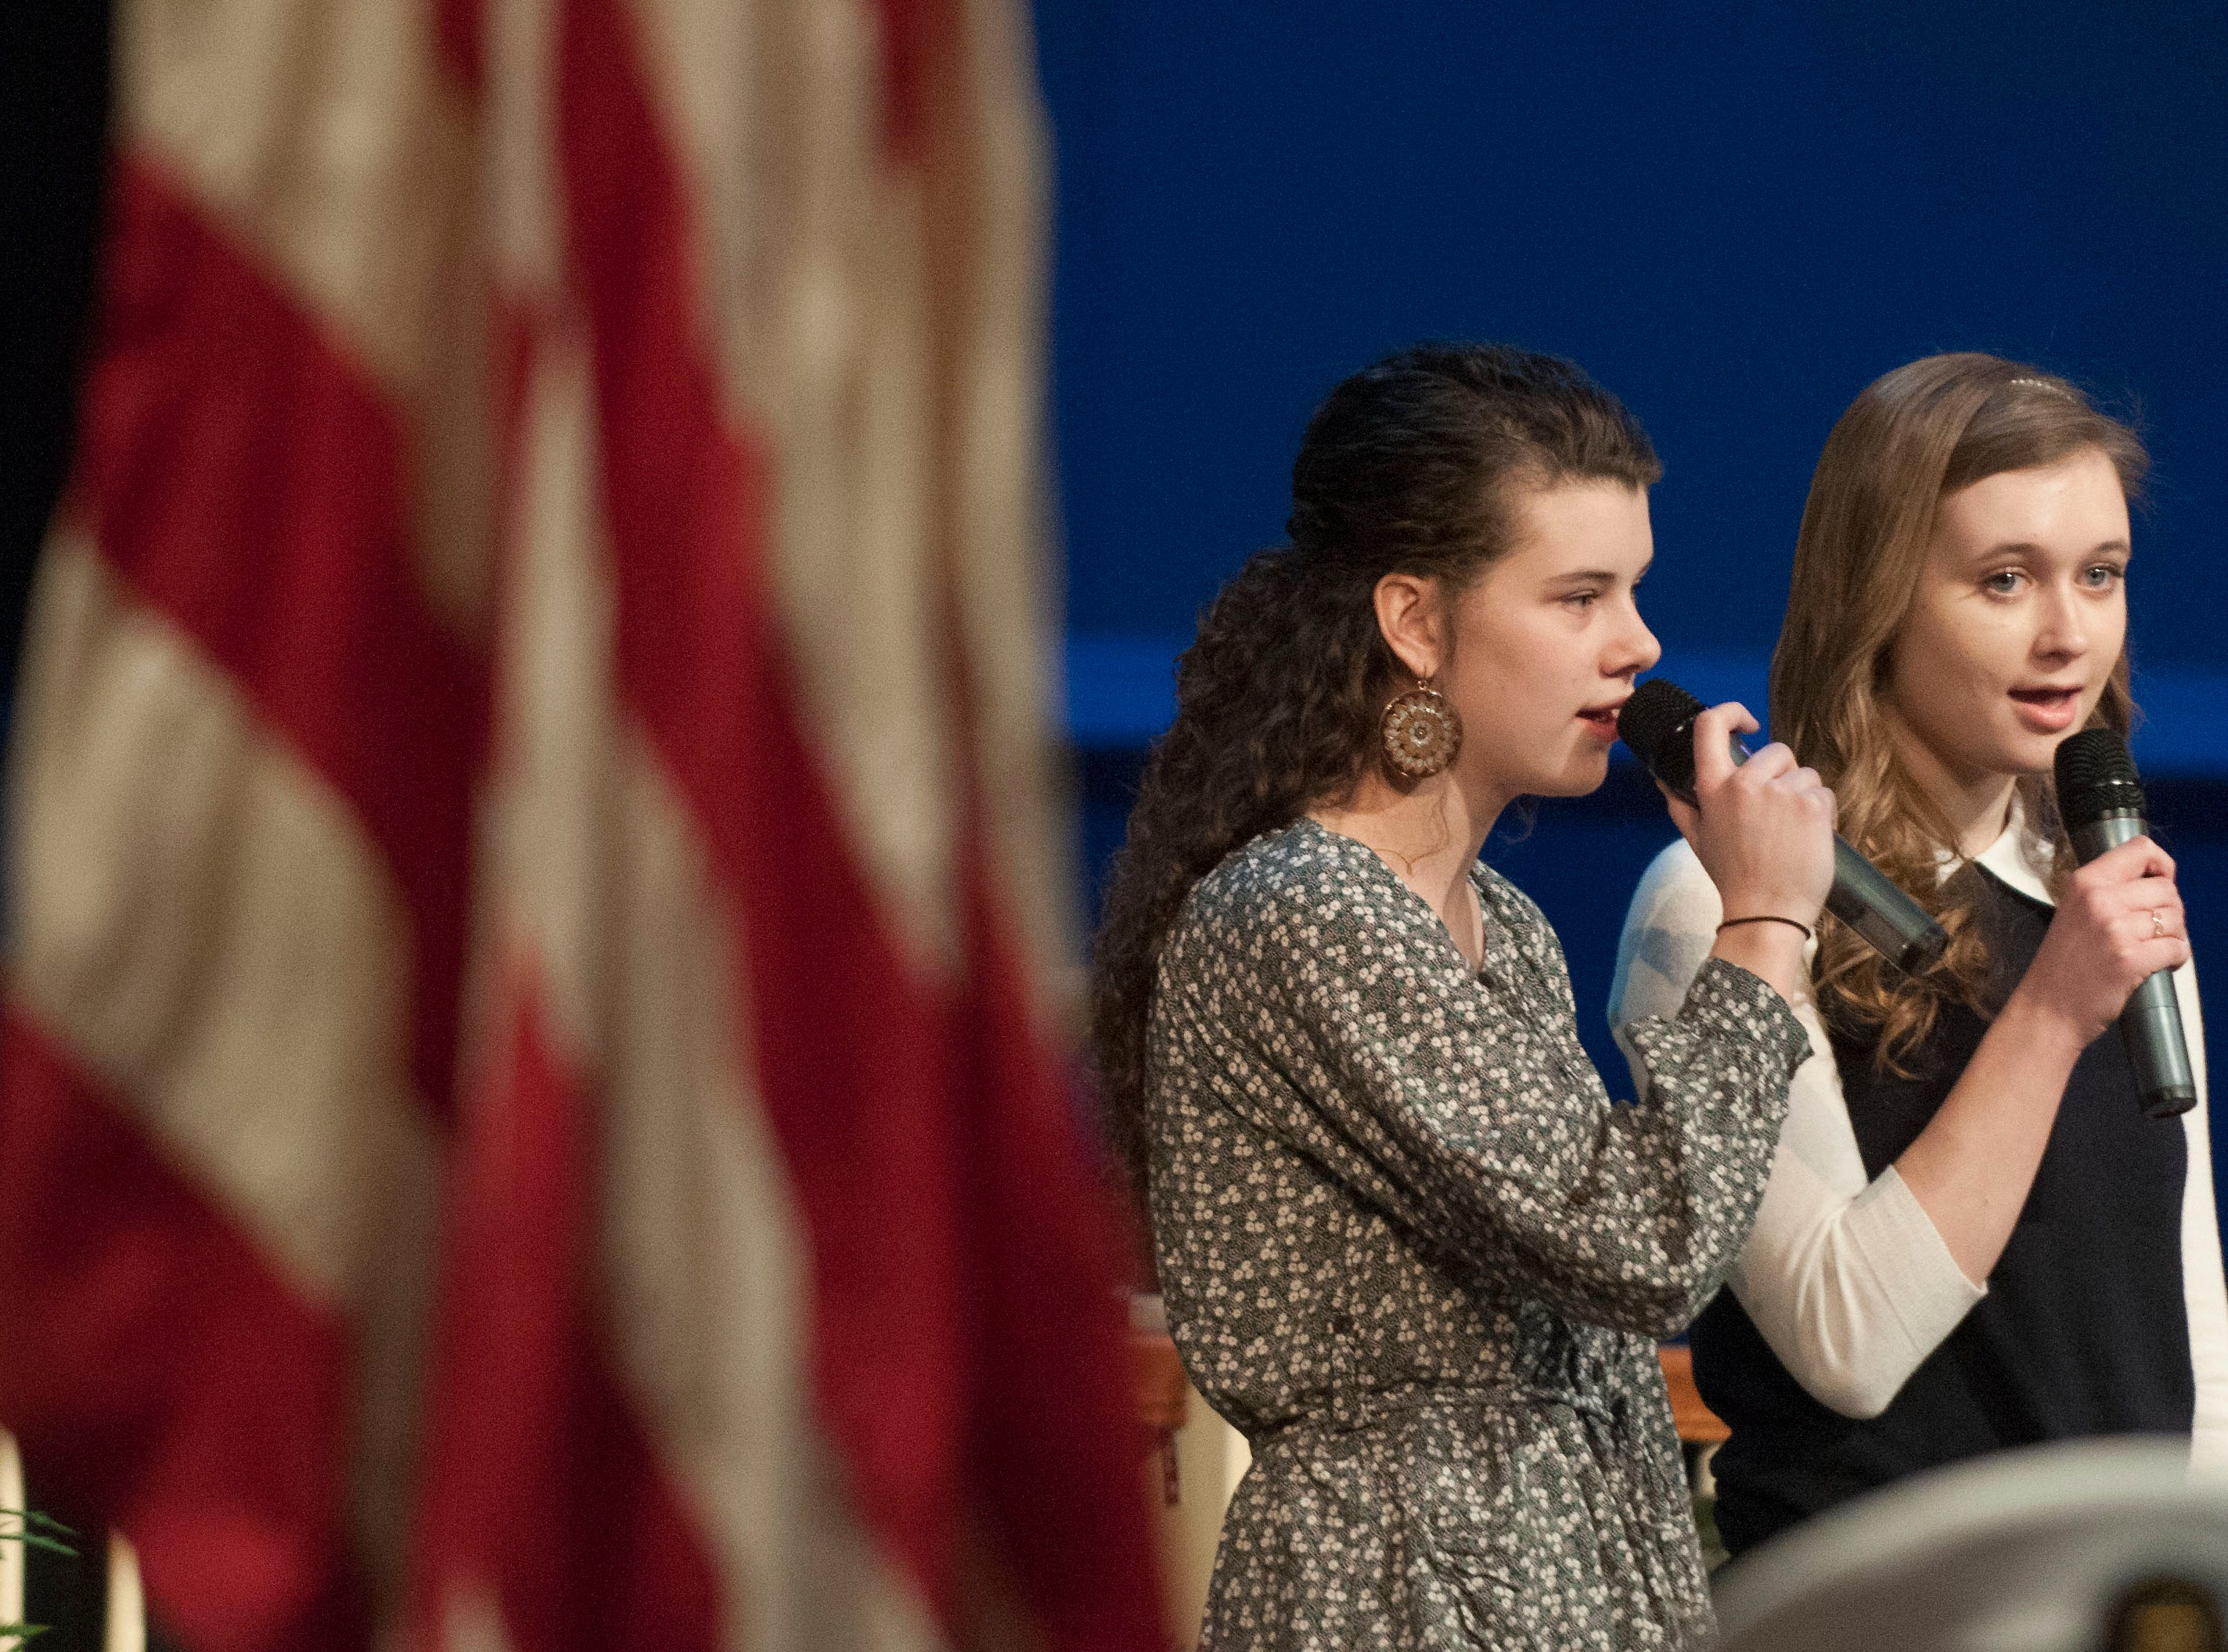 Clinton High School Students Emmie Merritt, left and Lauren Headrick, right sang the National Anthem a the start of the kick off for the Gear Up program. Former University of Tennessee football player Todd Kelly was the keynote speaker for the  Gear Up kick off at Second Baptist Church in Clinton Thursday January 24, 2013.  The Gear Up program  is to help students (beginning with 7th graders) prepare for college and the job world. It's funded by a $1.2 million grant.